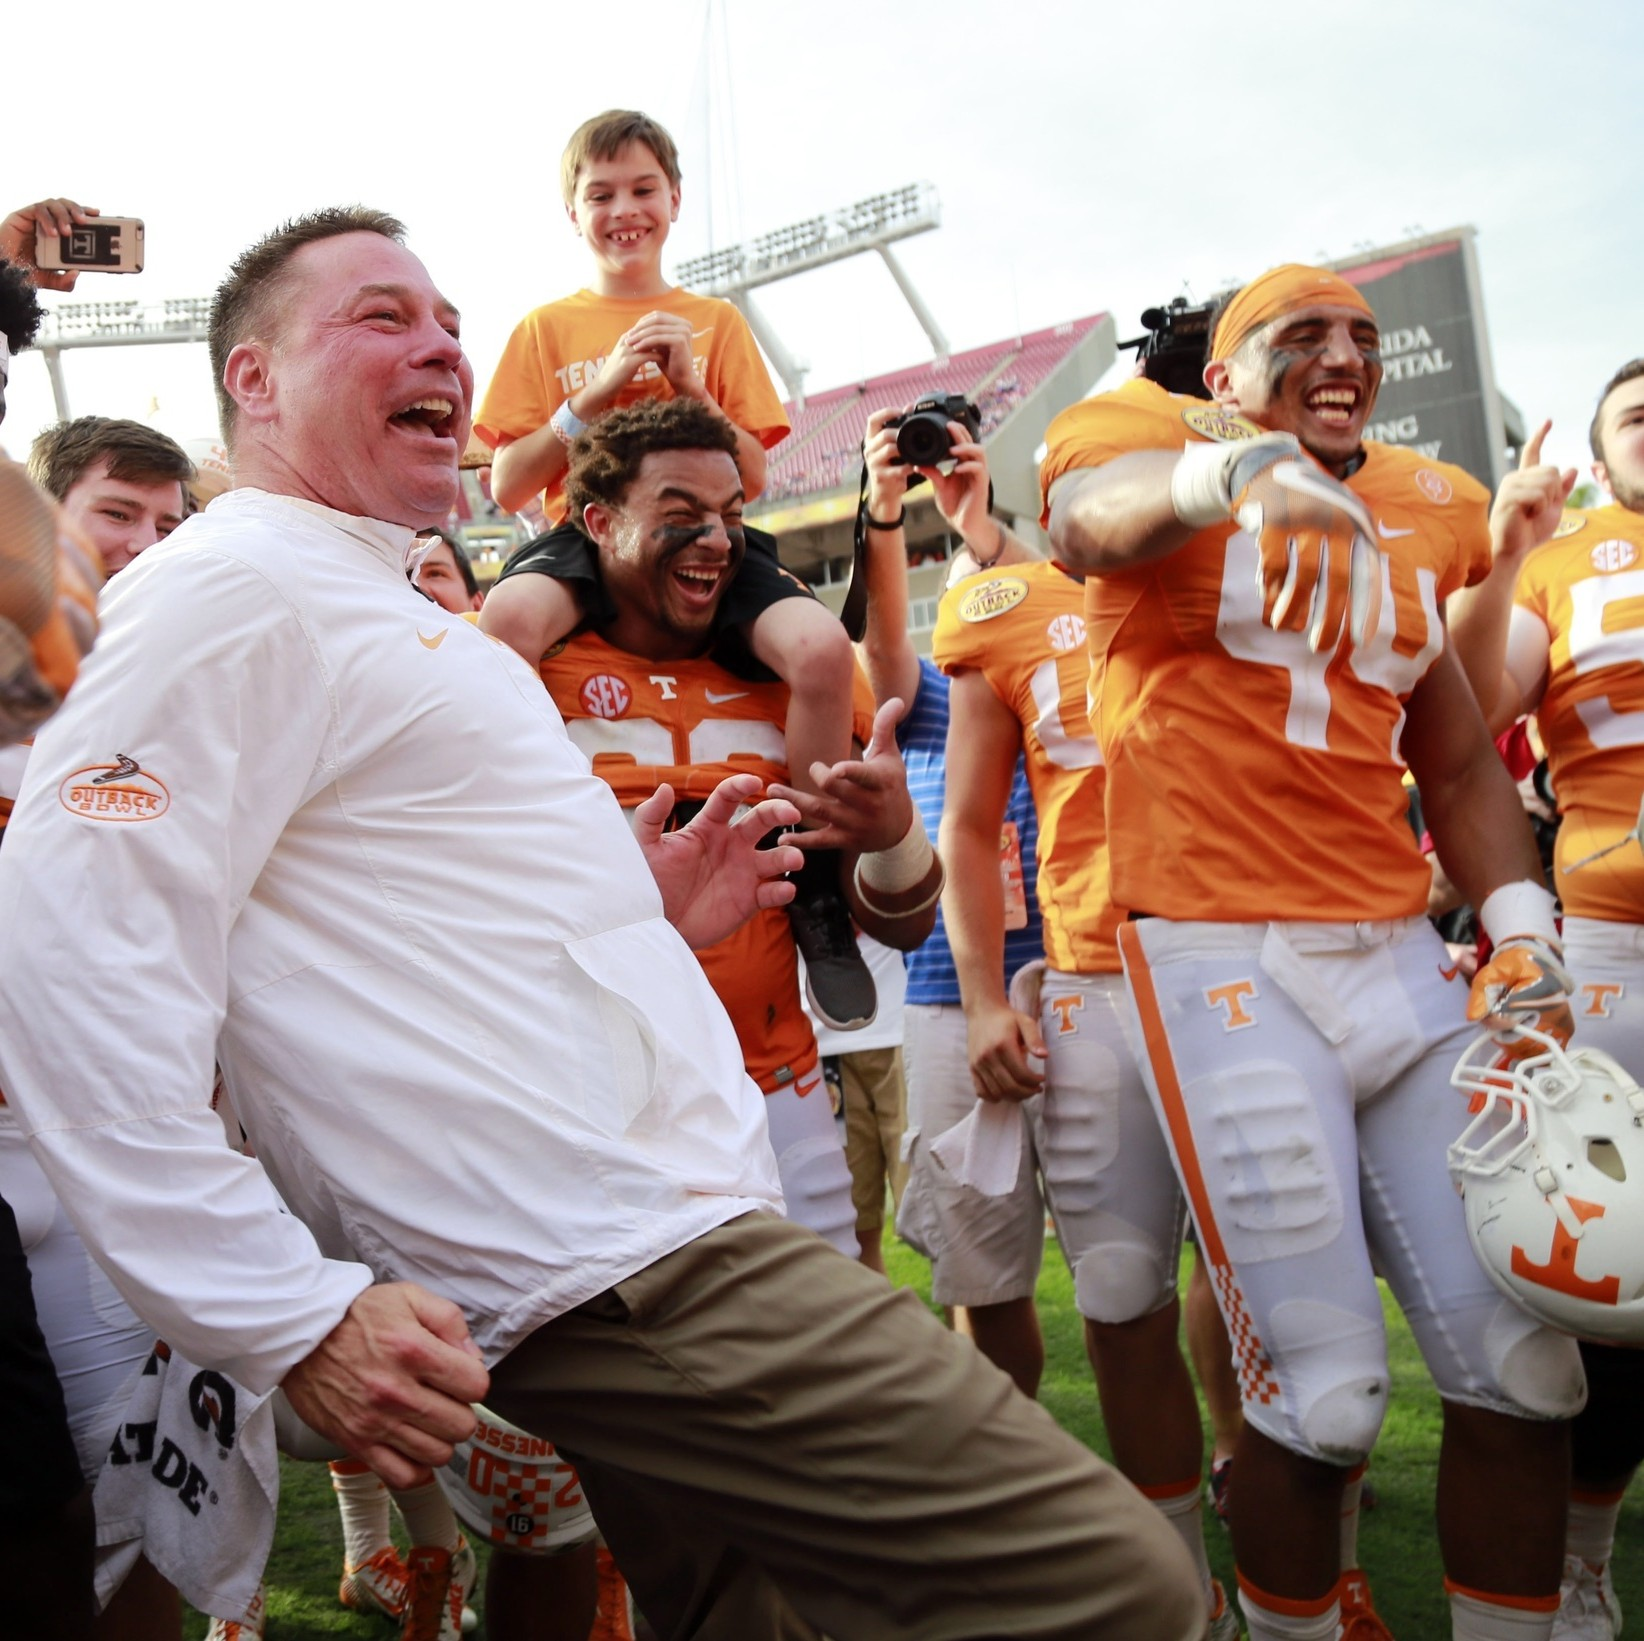 Butch-jones-had-made-tennessee-good-again-but-can-the-vols-be-great-1468960311.jpg?crop=0.723196881091618xw:1xh;0